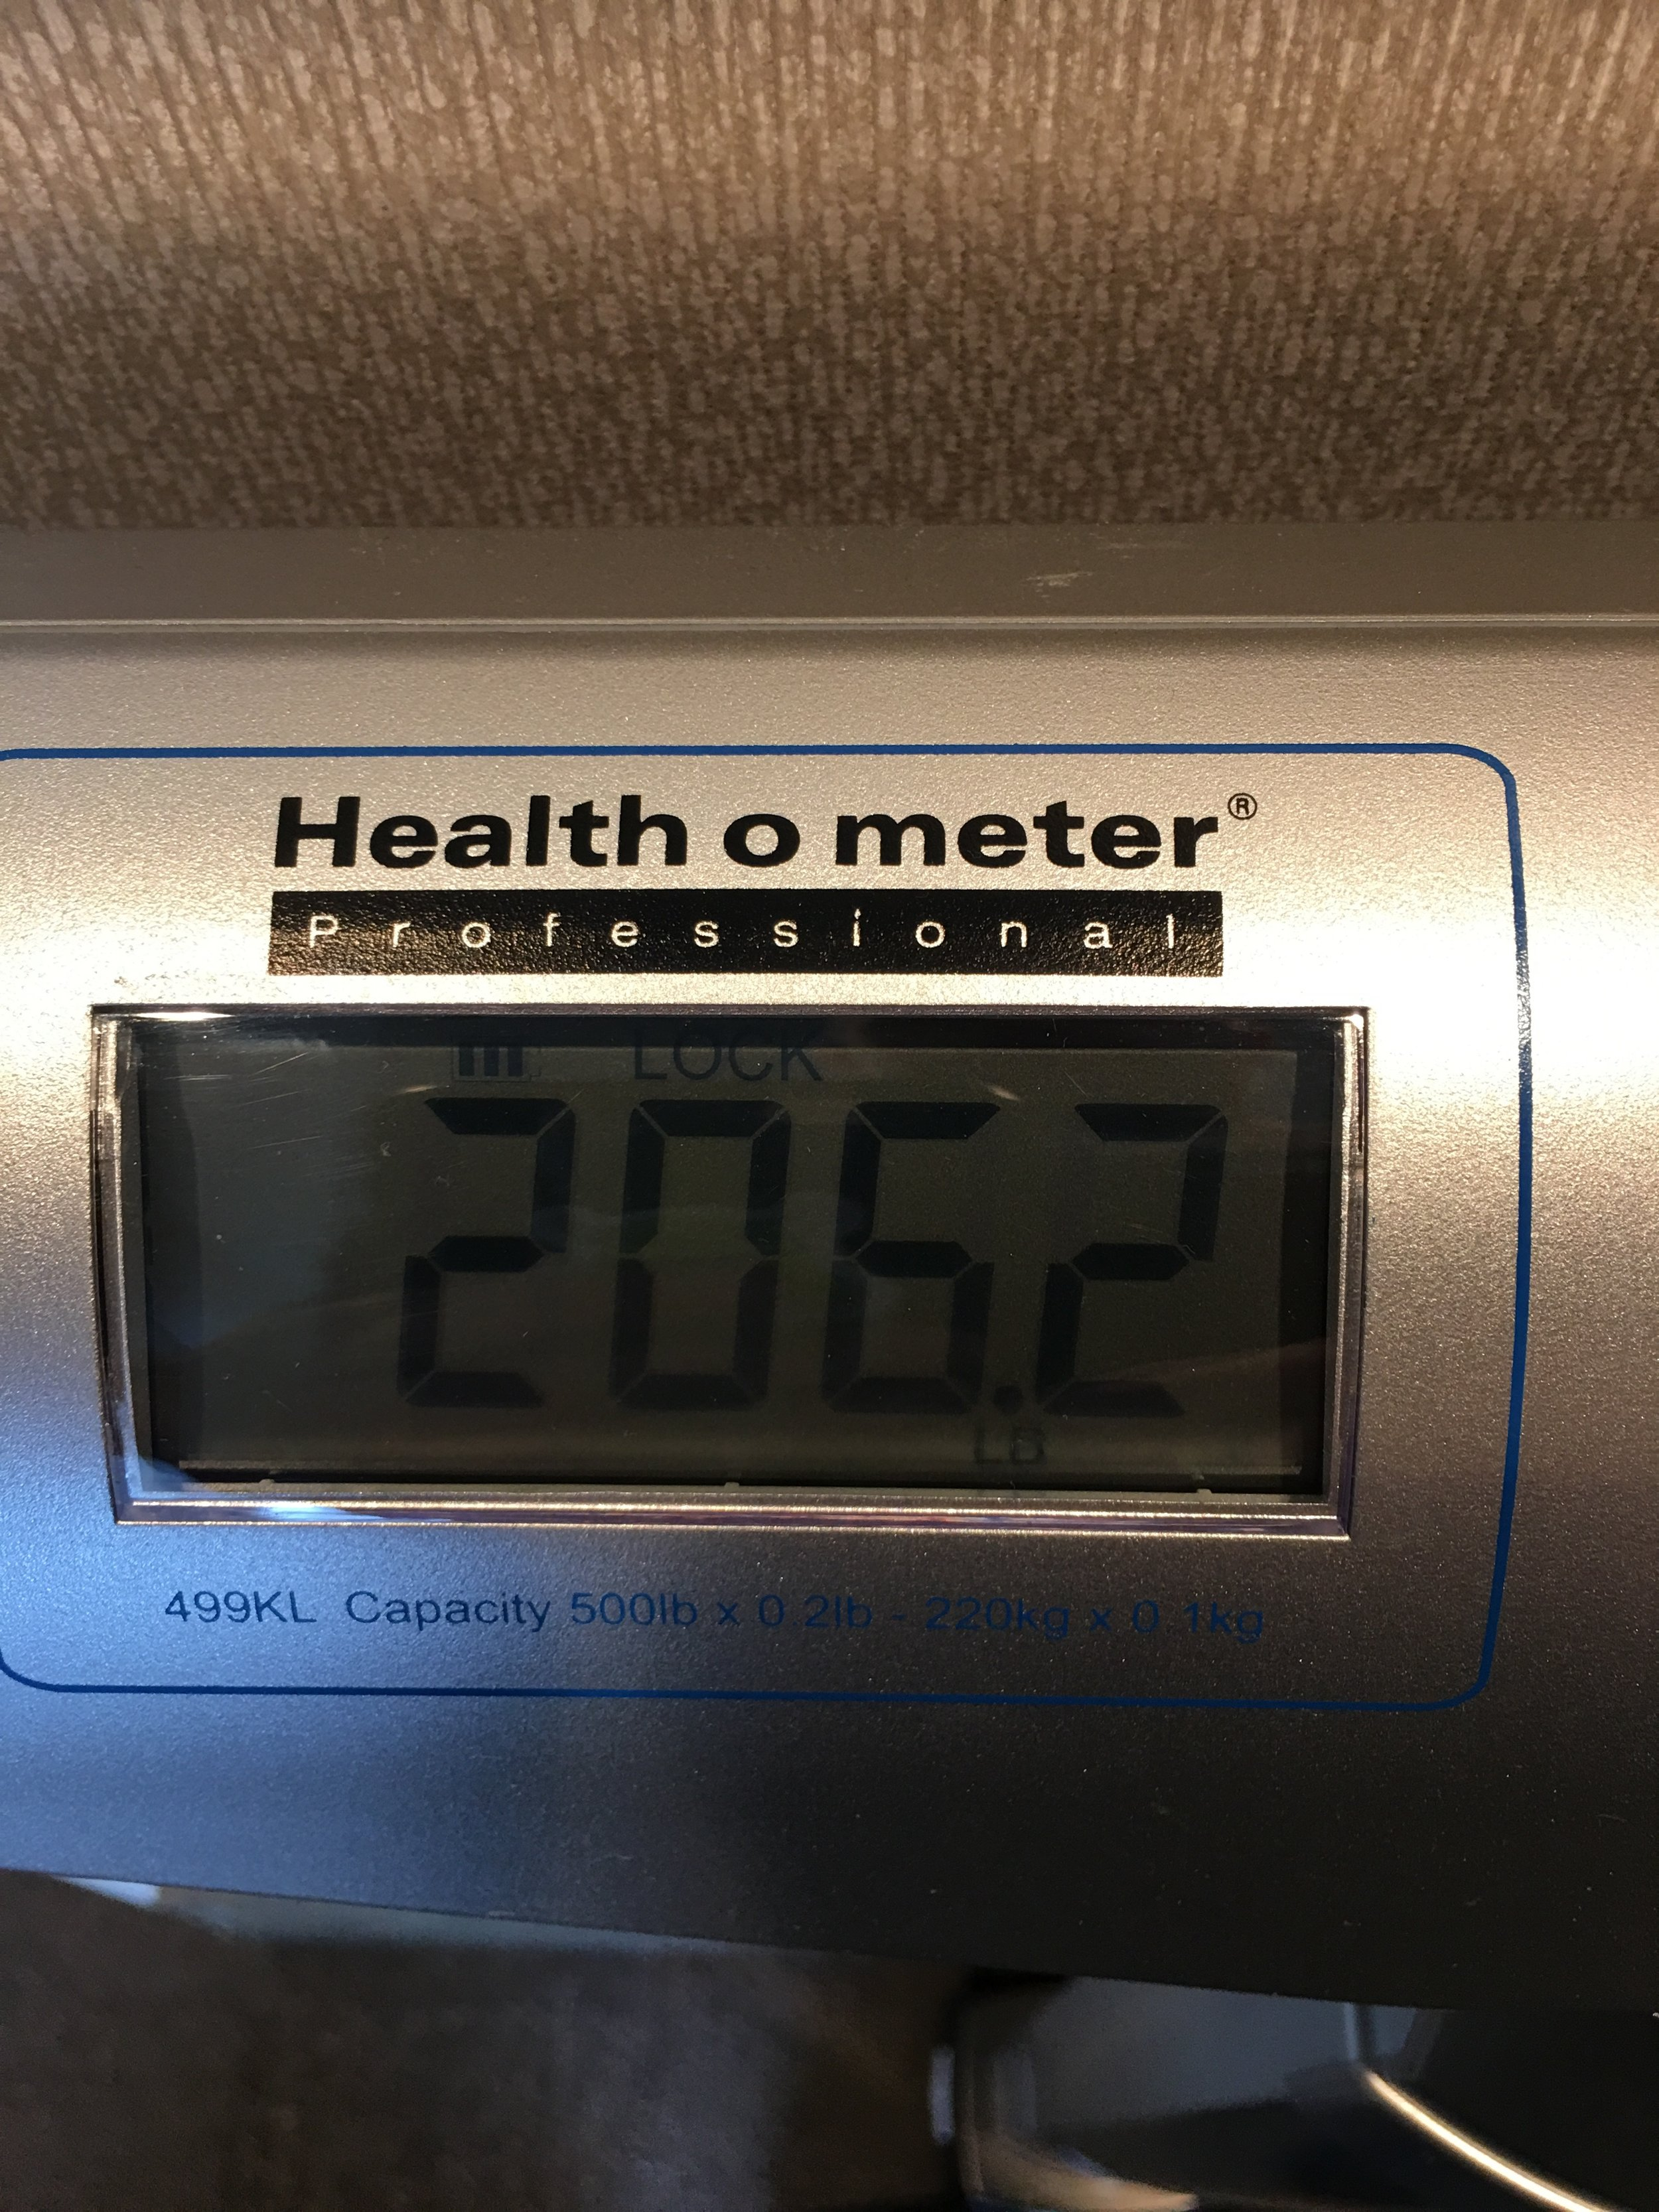 Checking weight on the hotel scale after arriving for the meet.